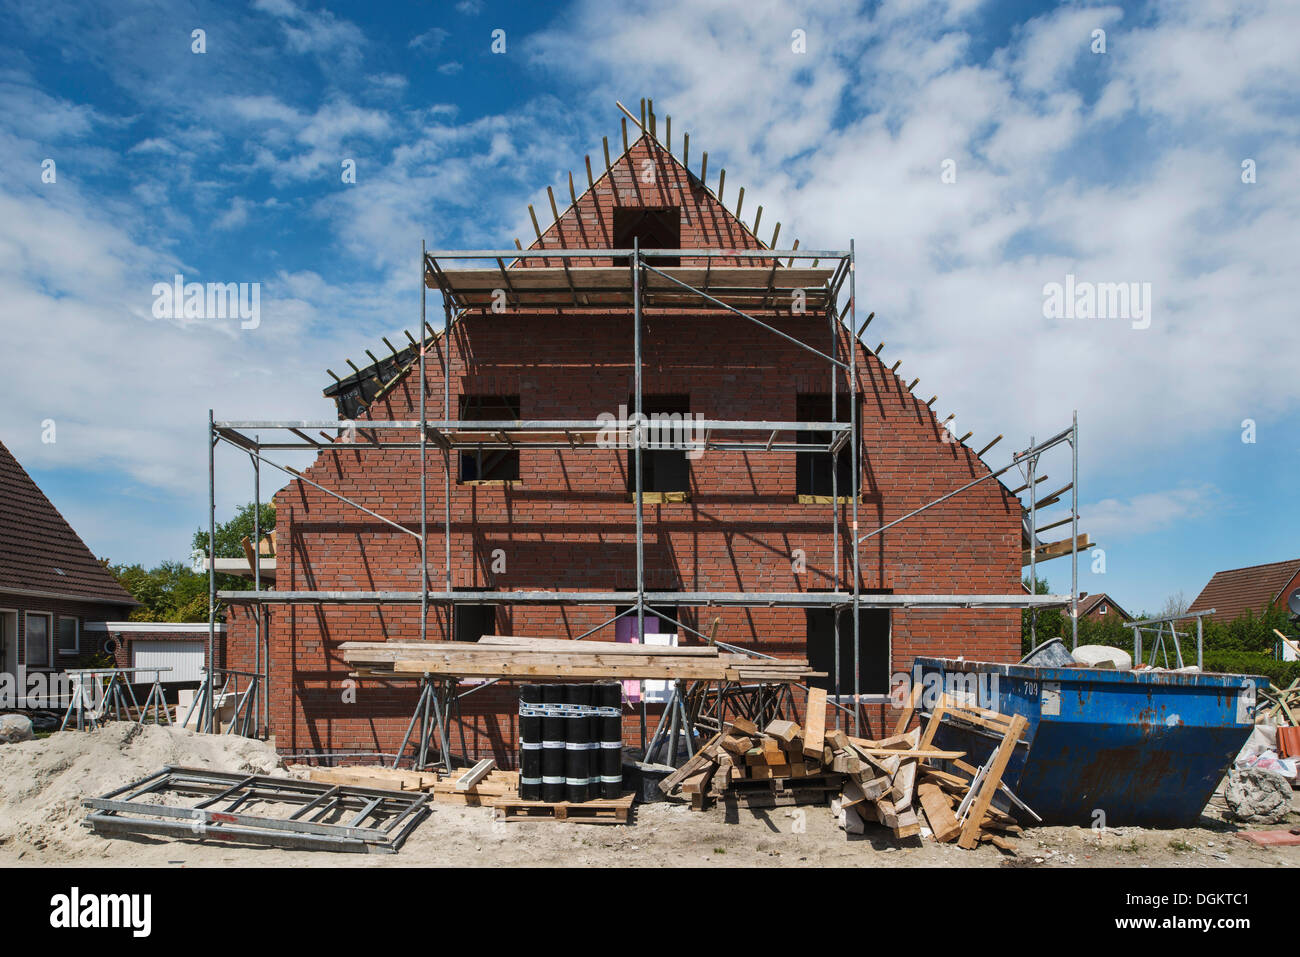 Scaffolded building, apartment house, piles of rubble and building materials at the front, Norden, East Frisia, Lower Saxony - Stock Image